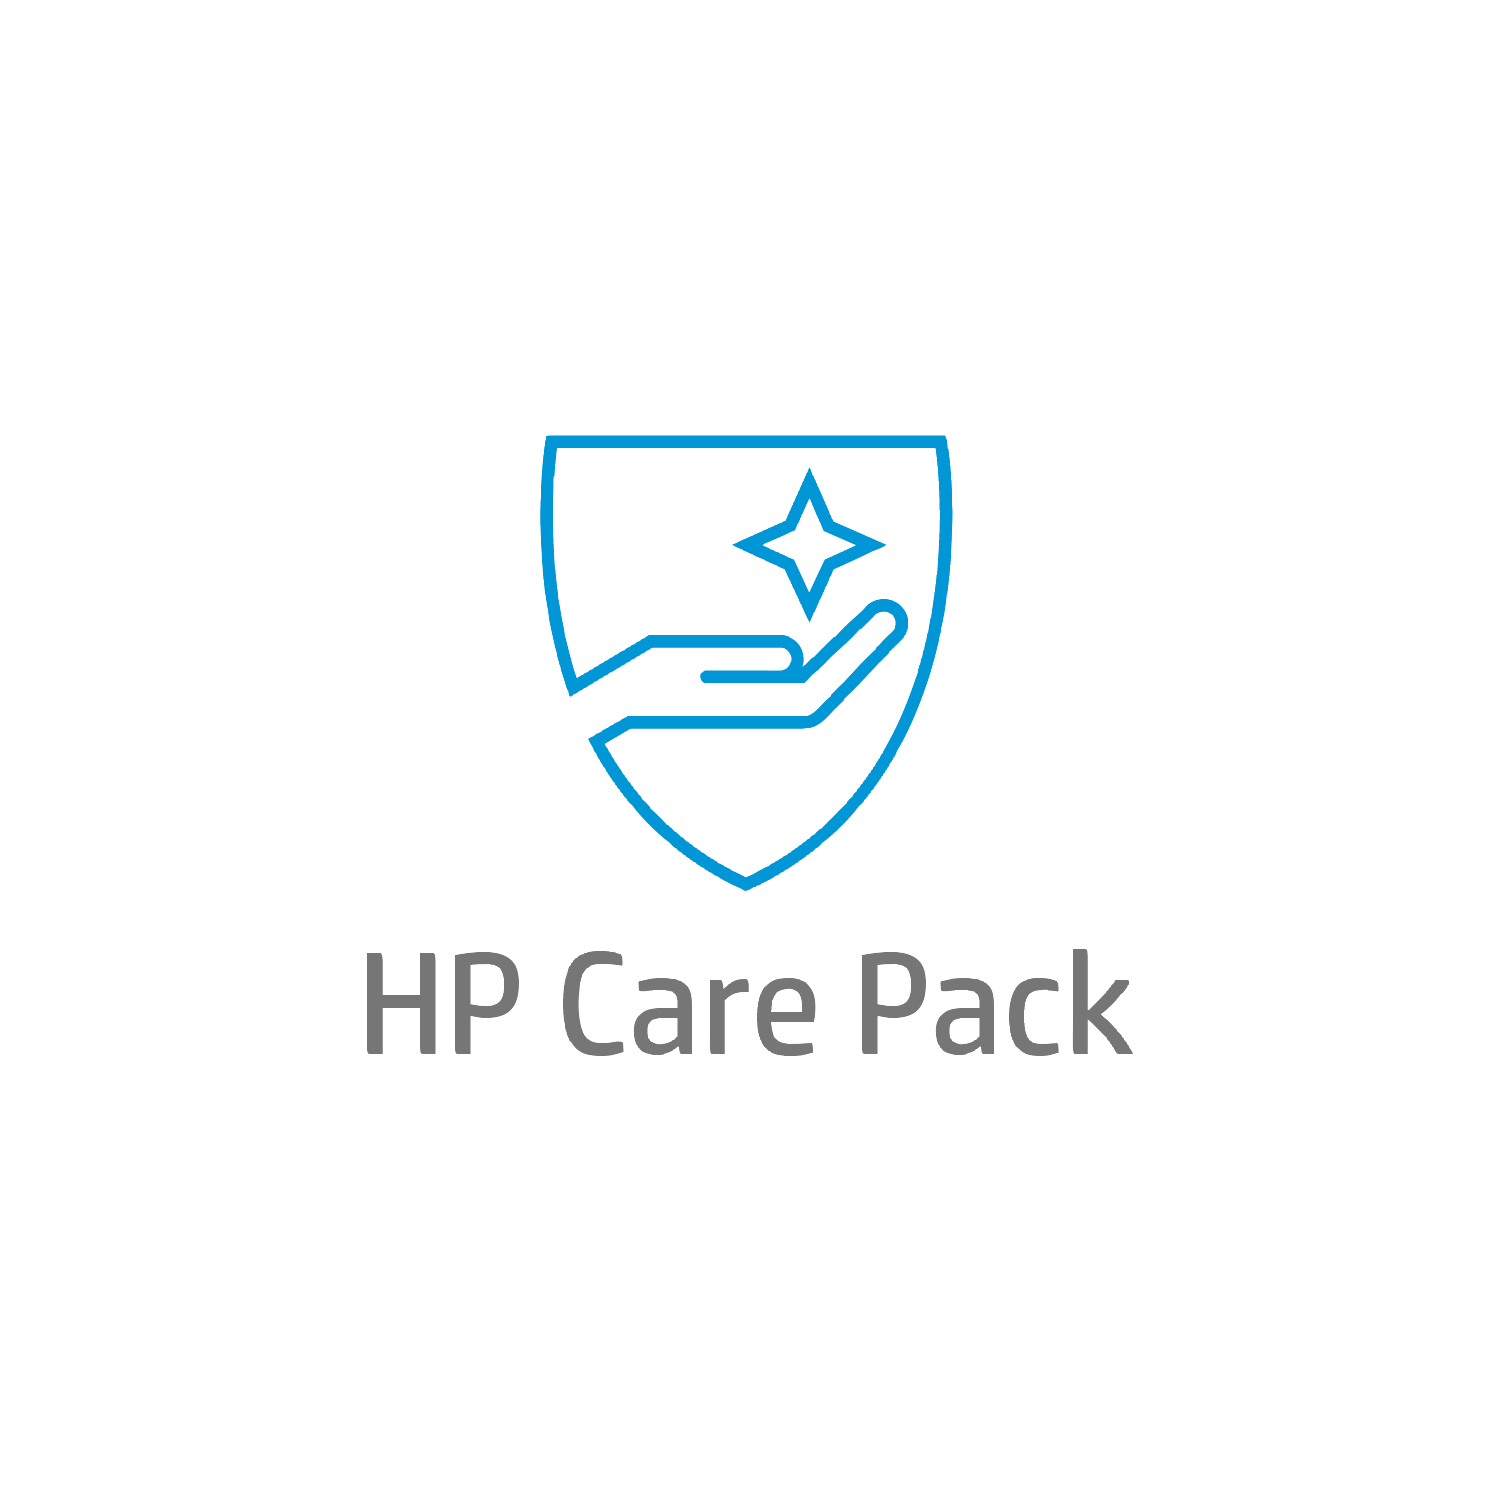 Electronic HP Care Pack Next Day Exchange Hardware Support - Extended Service Agreement - Replacement - 4 Years - Shipment - Response Time: NBD - For Deskjet Ink Advantage 2135, Ink Advantage - C2000